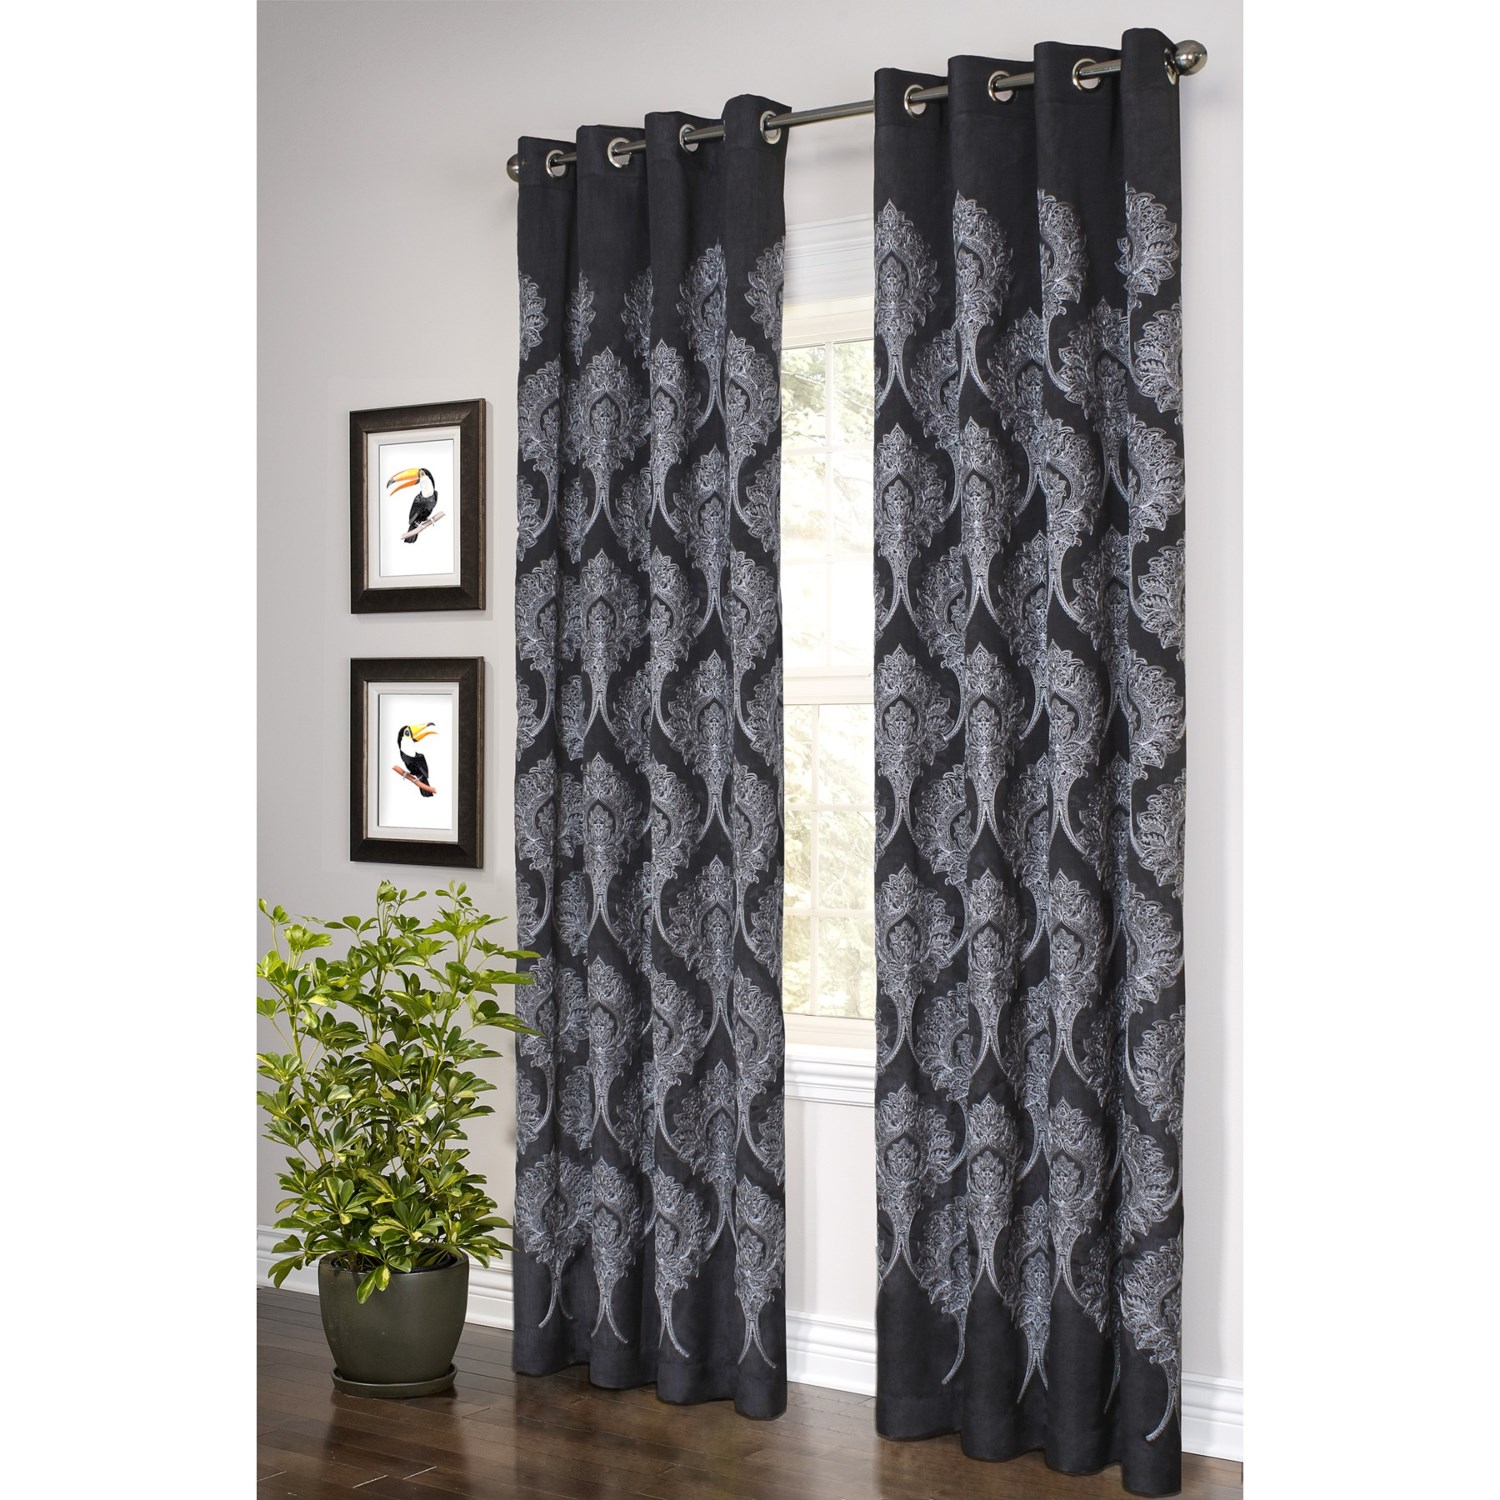 Black and white curtains bedroom - Bedroom Curtain Ideas Black Embroidered Curtains 95 Grommet Top In Black W White Embroidery Black